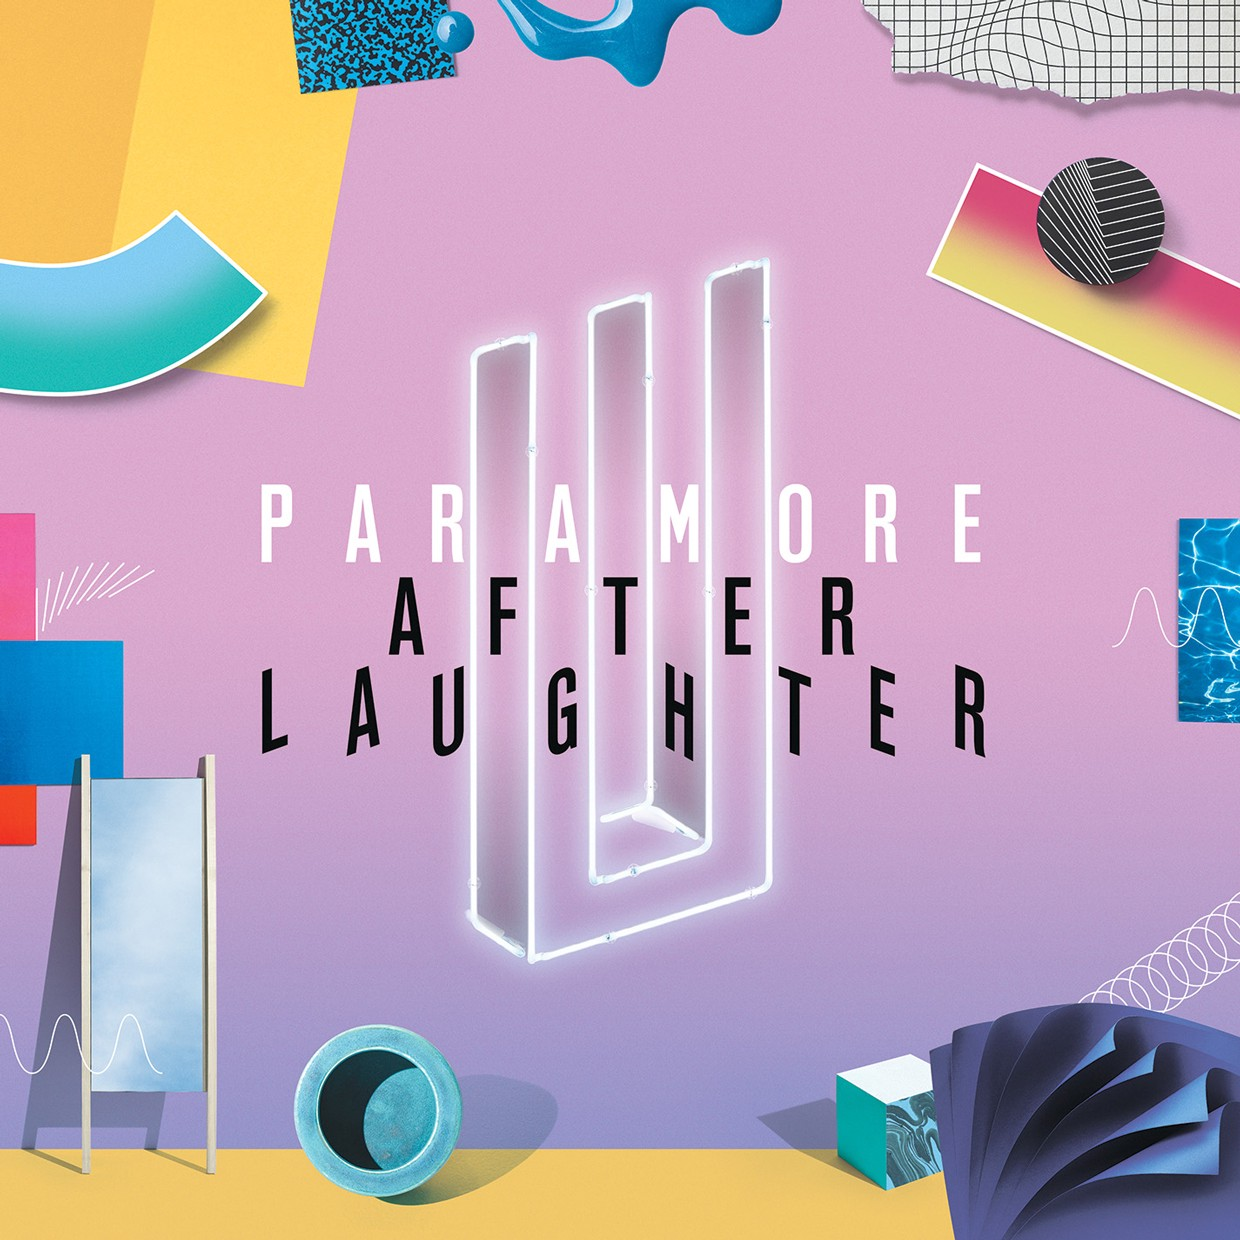 Paramore — After Laughter (2017) | Album Review - vuhchule